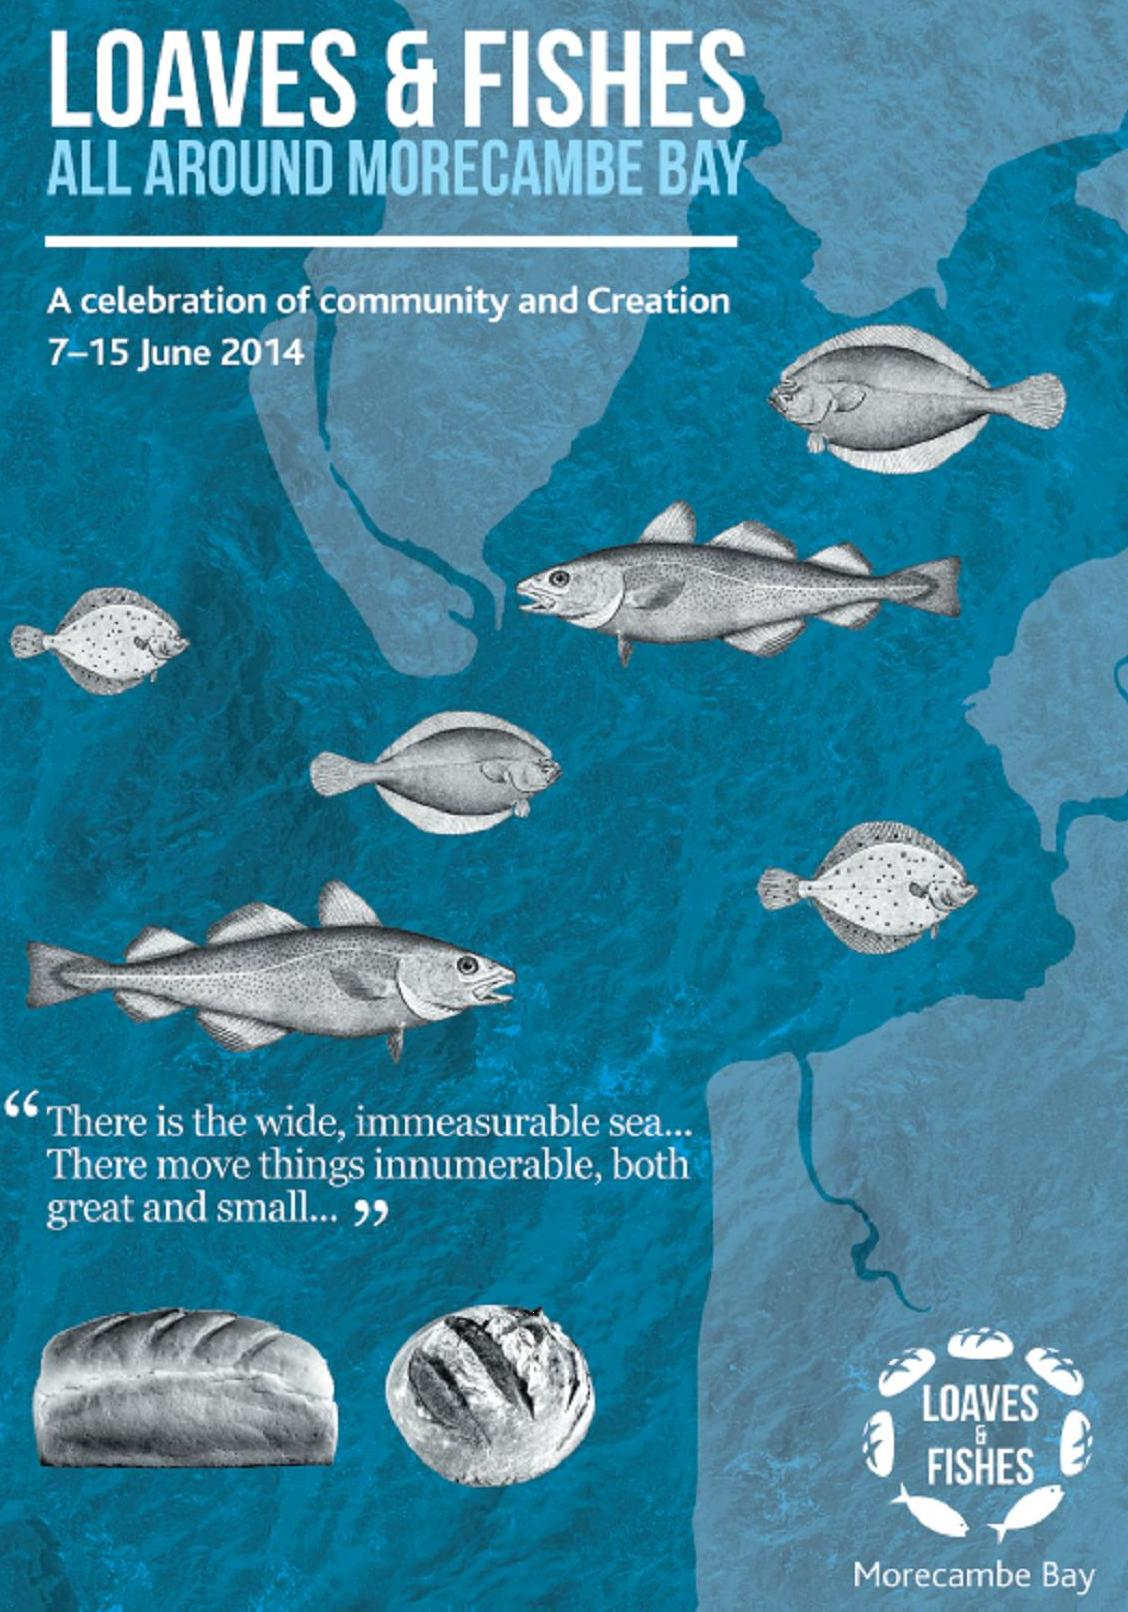 Environment groups cafod lancaster blog for Loves and fishes